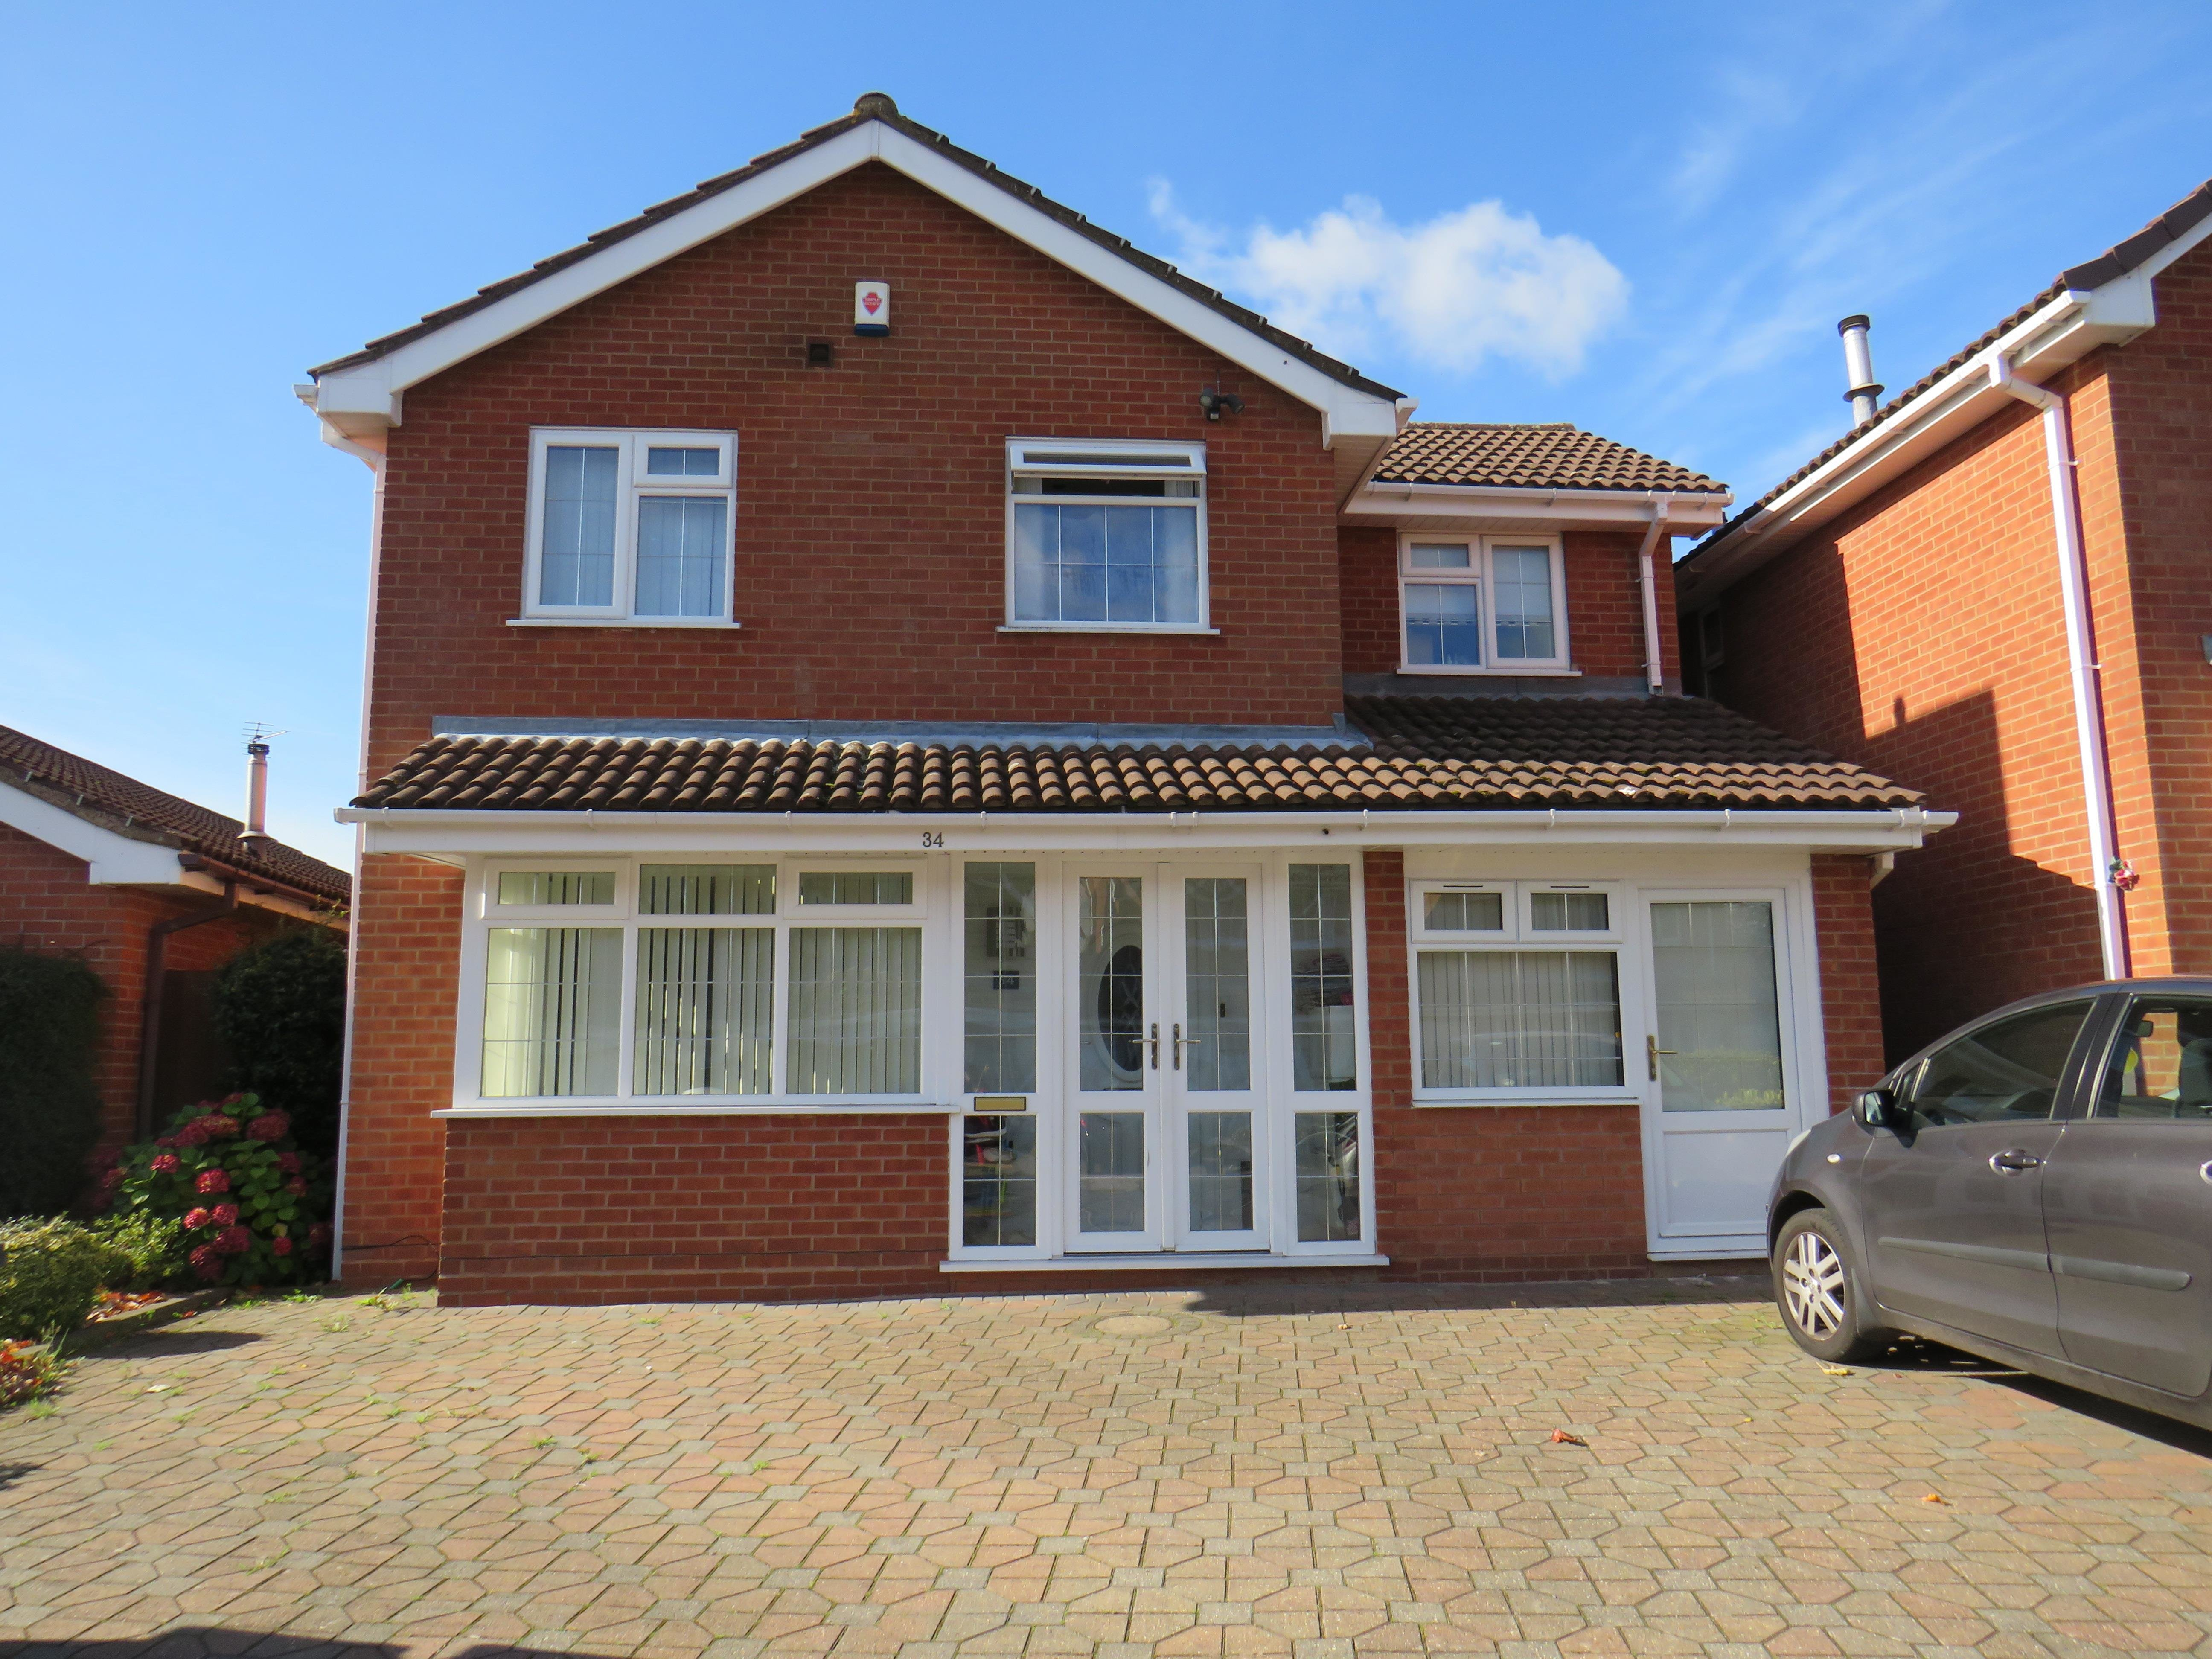 Best 5 Bedroom House To Rent Newey Road Hall Green Birmingham B B28 0Jq With Pictures